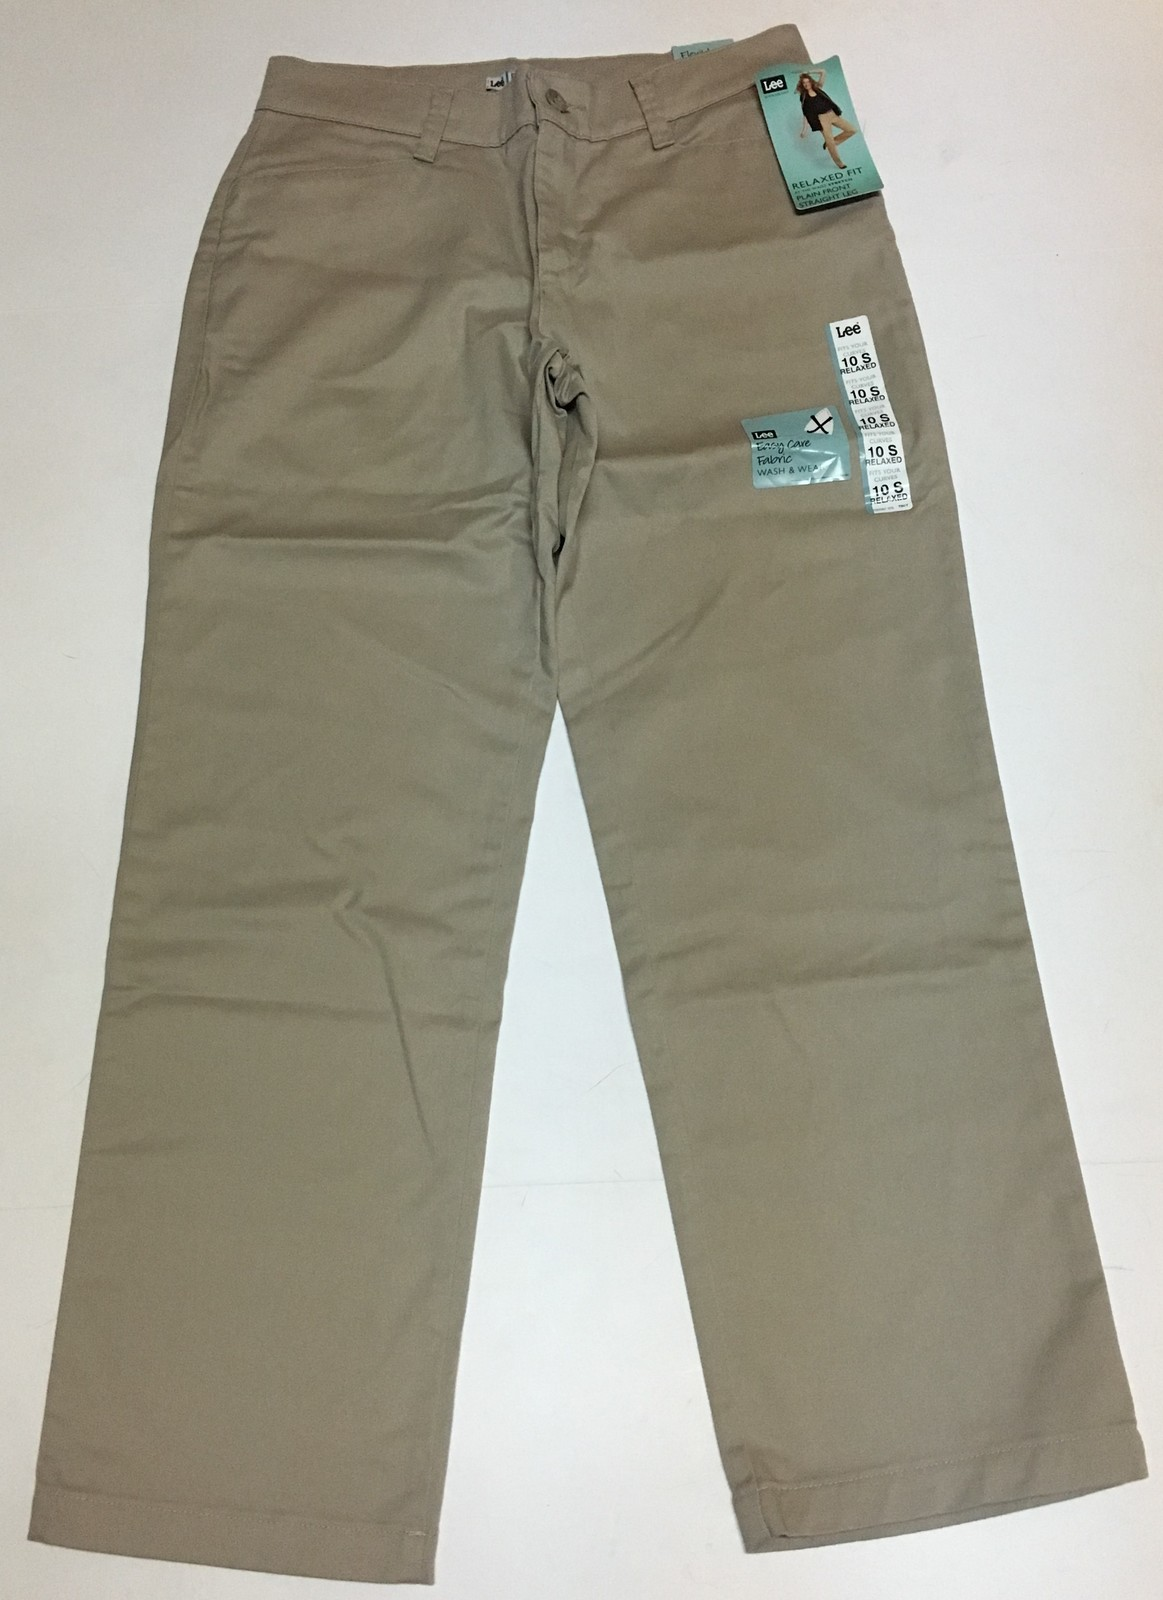 Lee Relaxed Fit Stretch Beige Pants Sz 10 Short Straight Leg NWT image 5